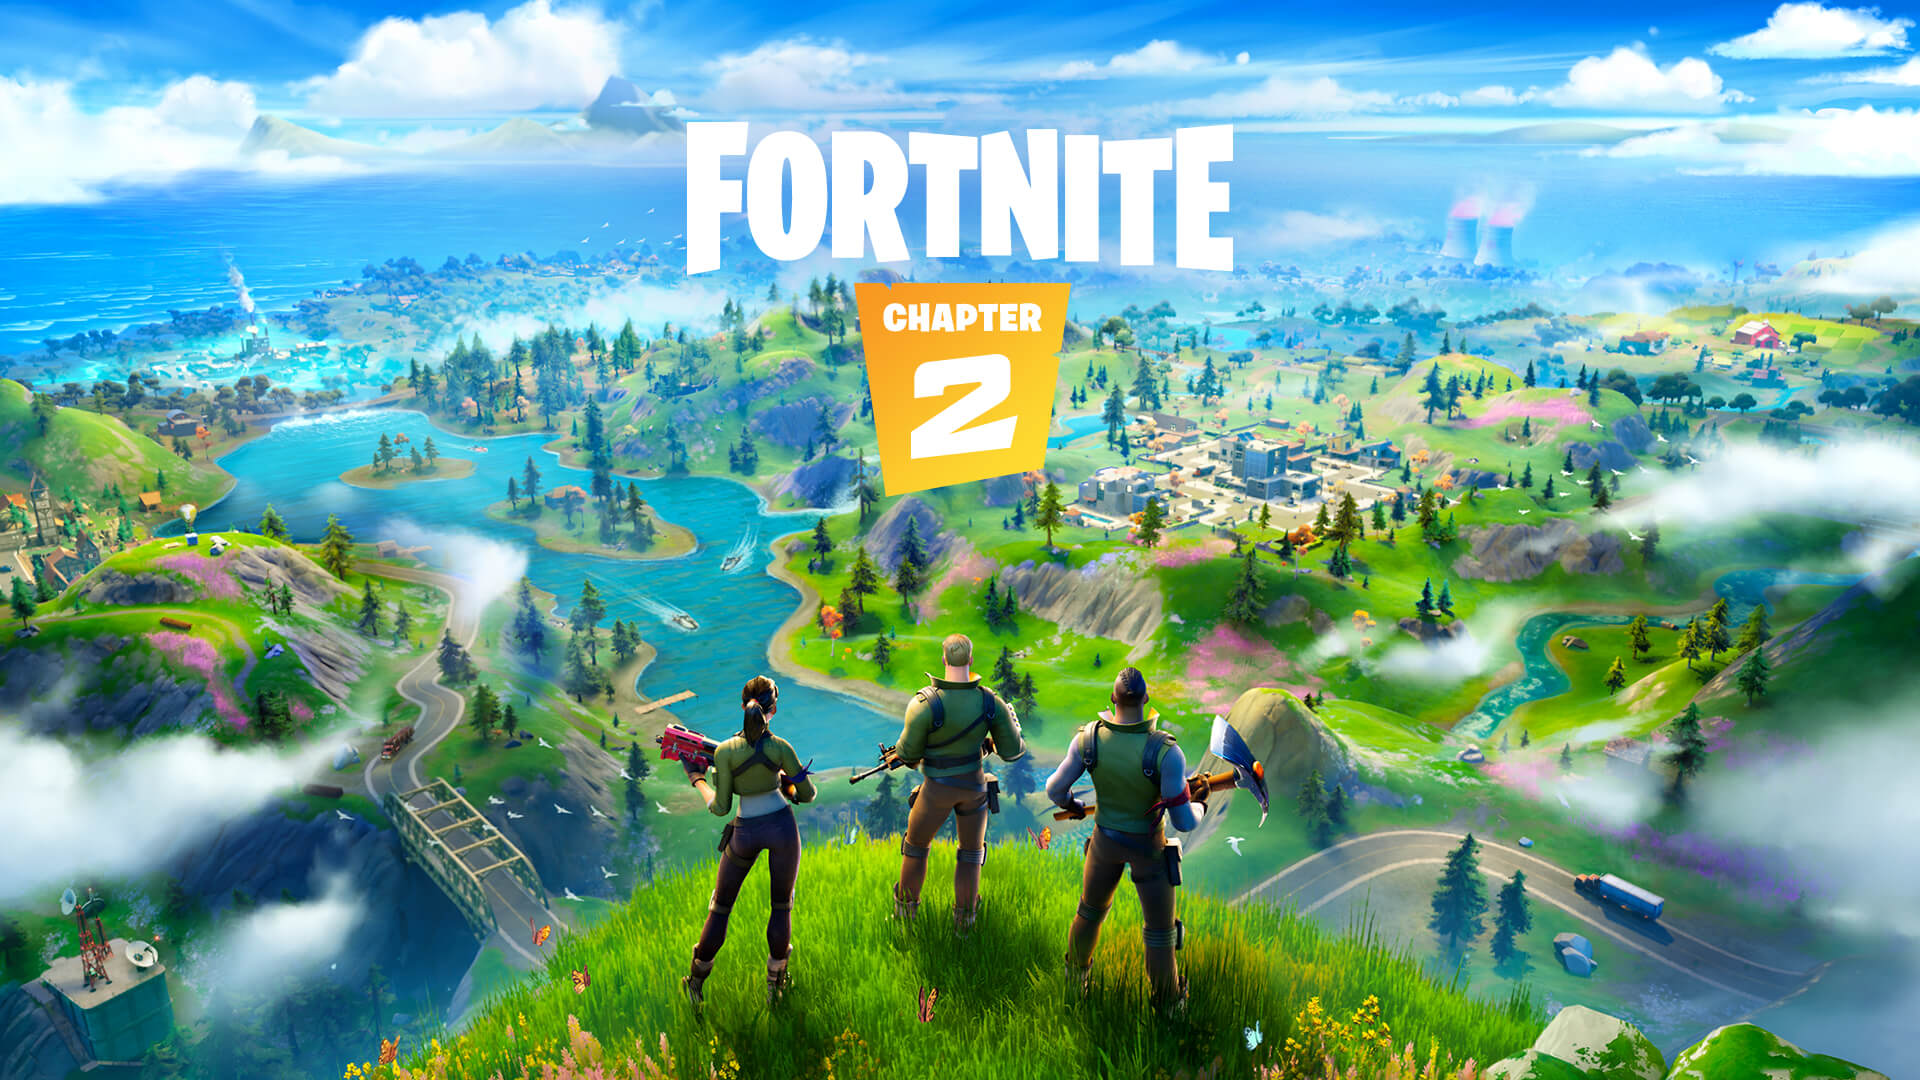 Otto Gardinen Ludwigsburg Fortnite Play Free Now Official Site Epic Games